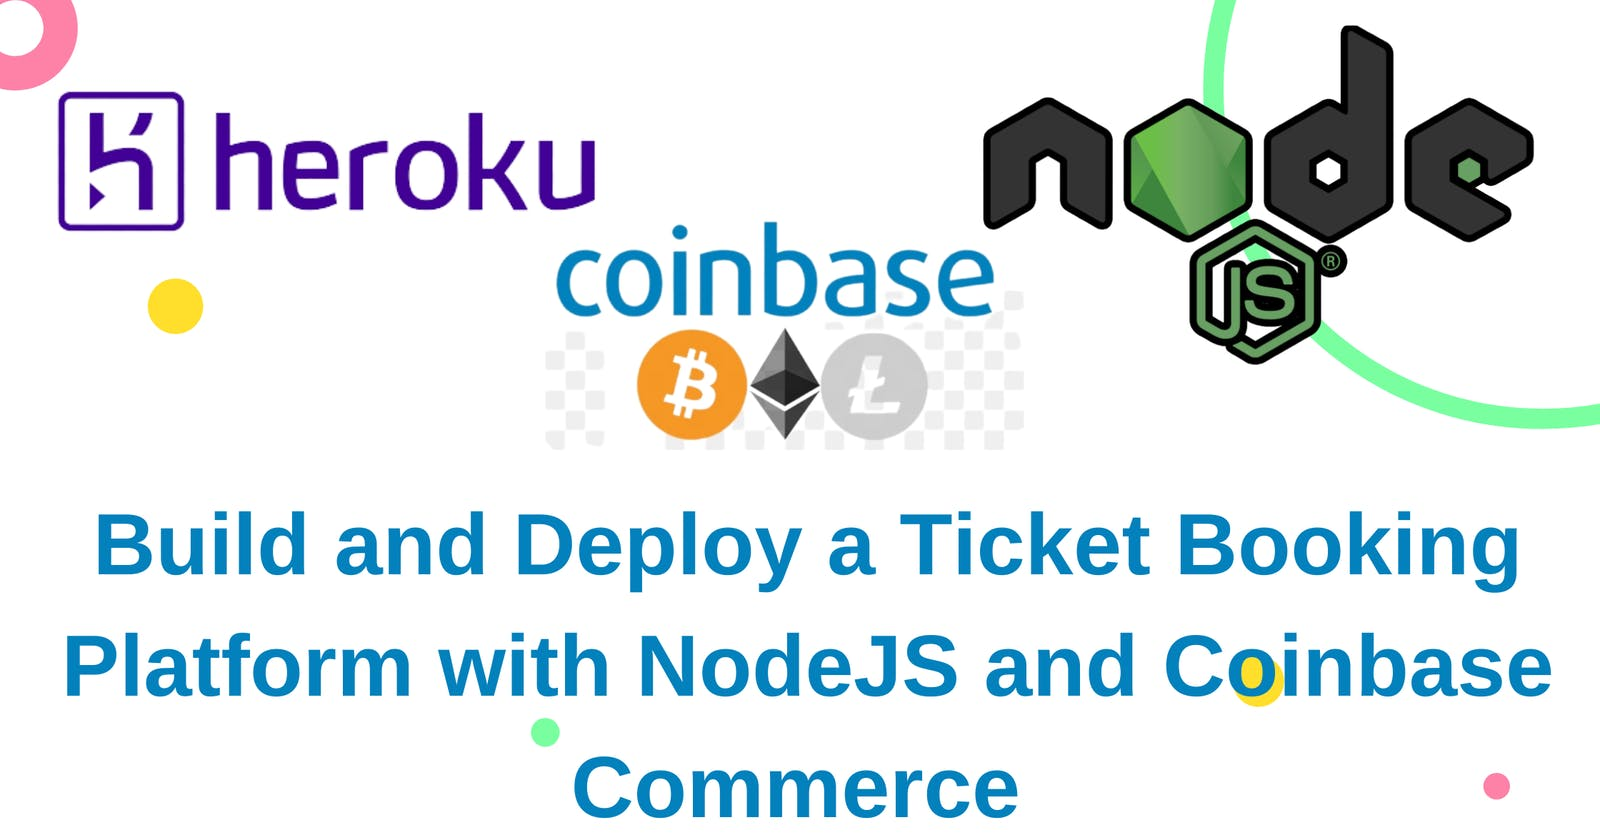 Build and Deploy a Ticket Booking Platform with NodeJS and Coinbase Commerce